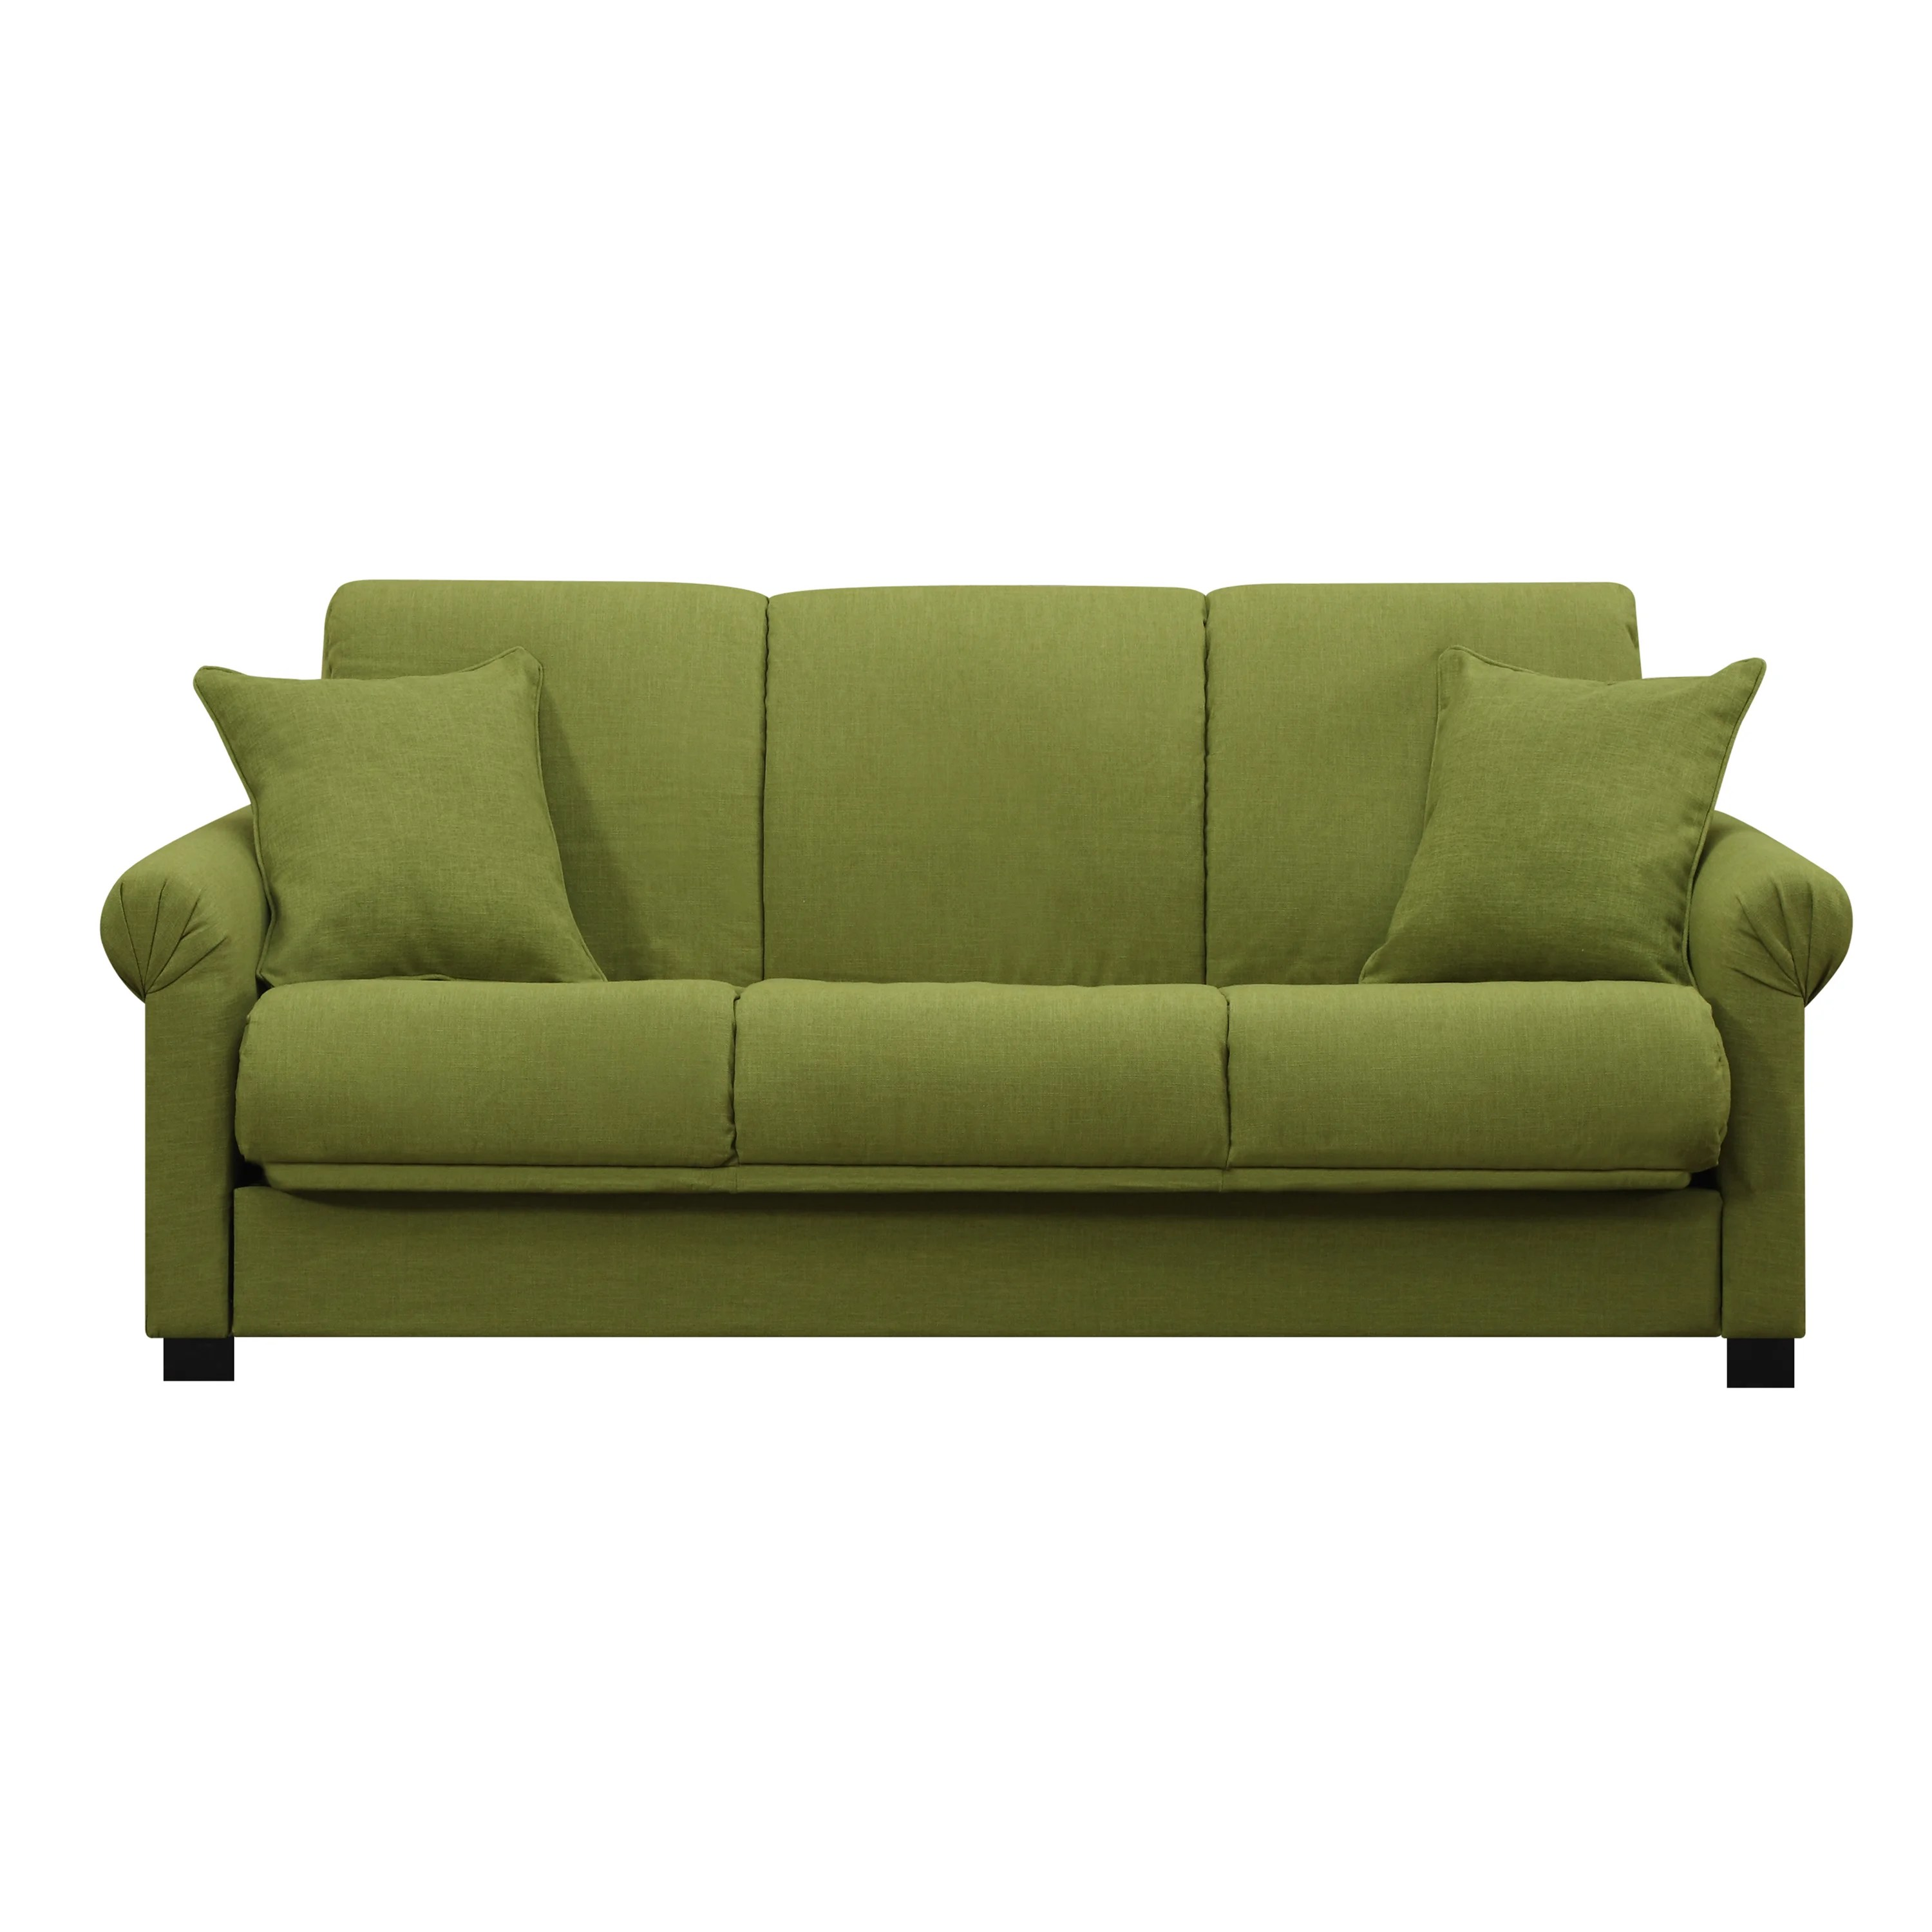 Futon Nice Handy Living Rio Convert A Couch Apple Green Linen Futon Sofa Sleeper